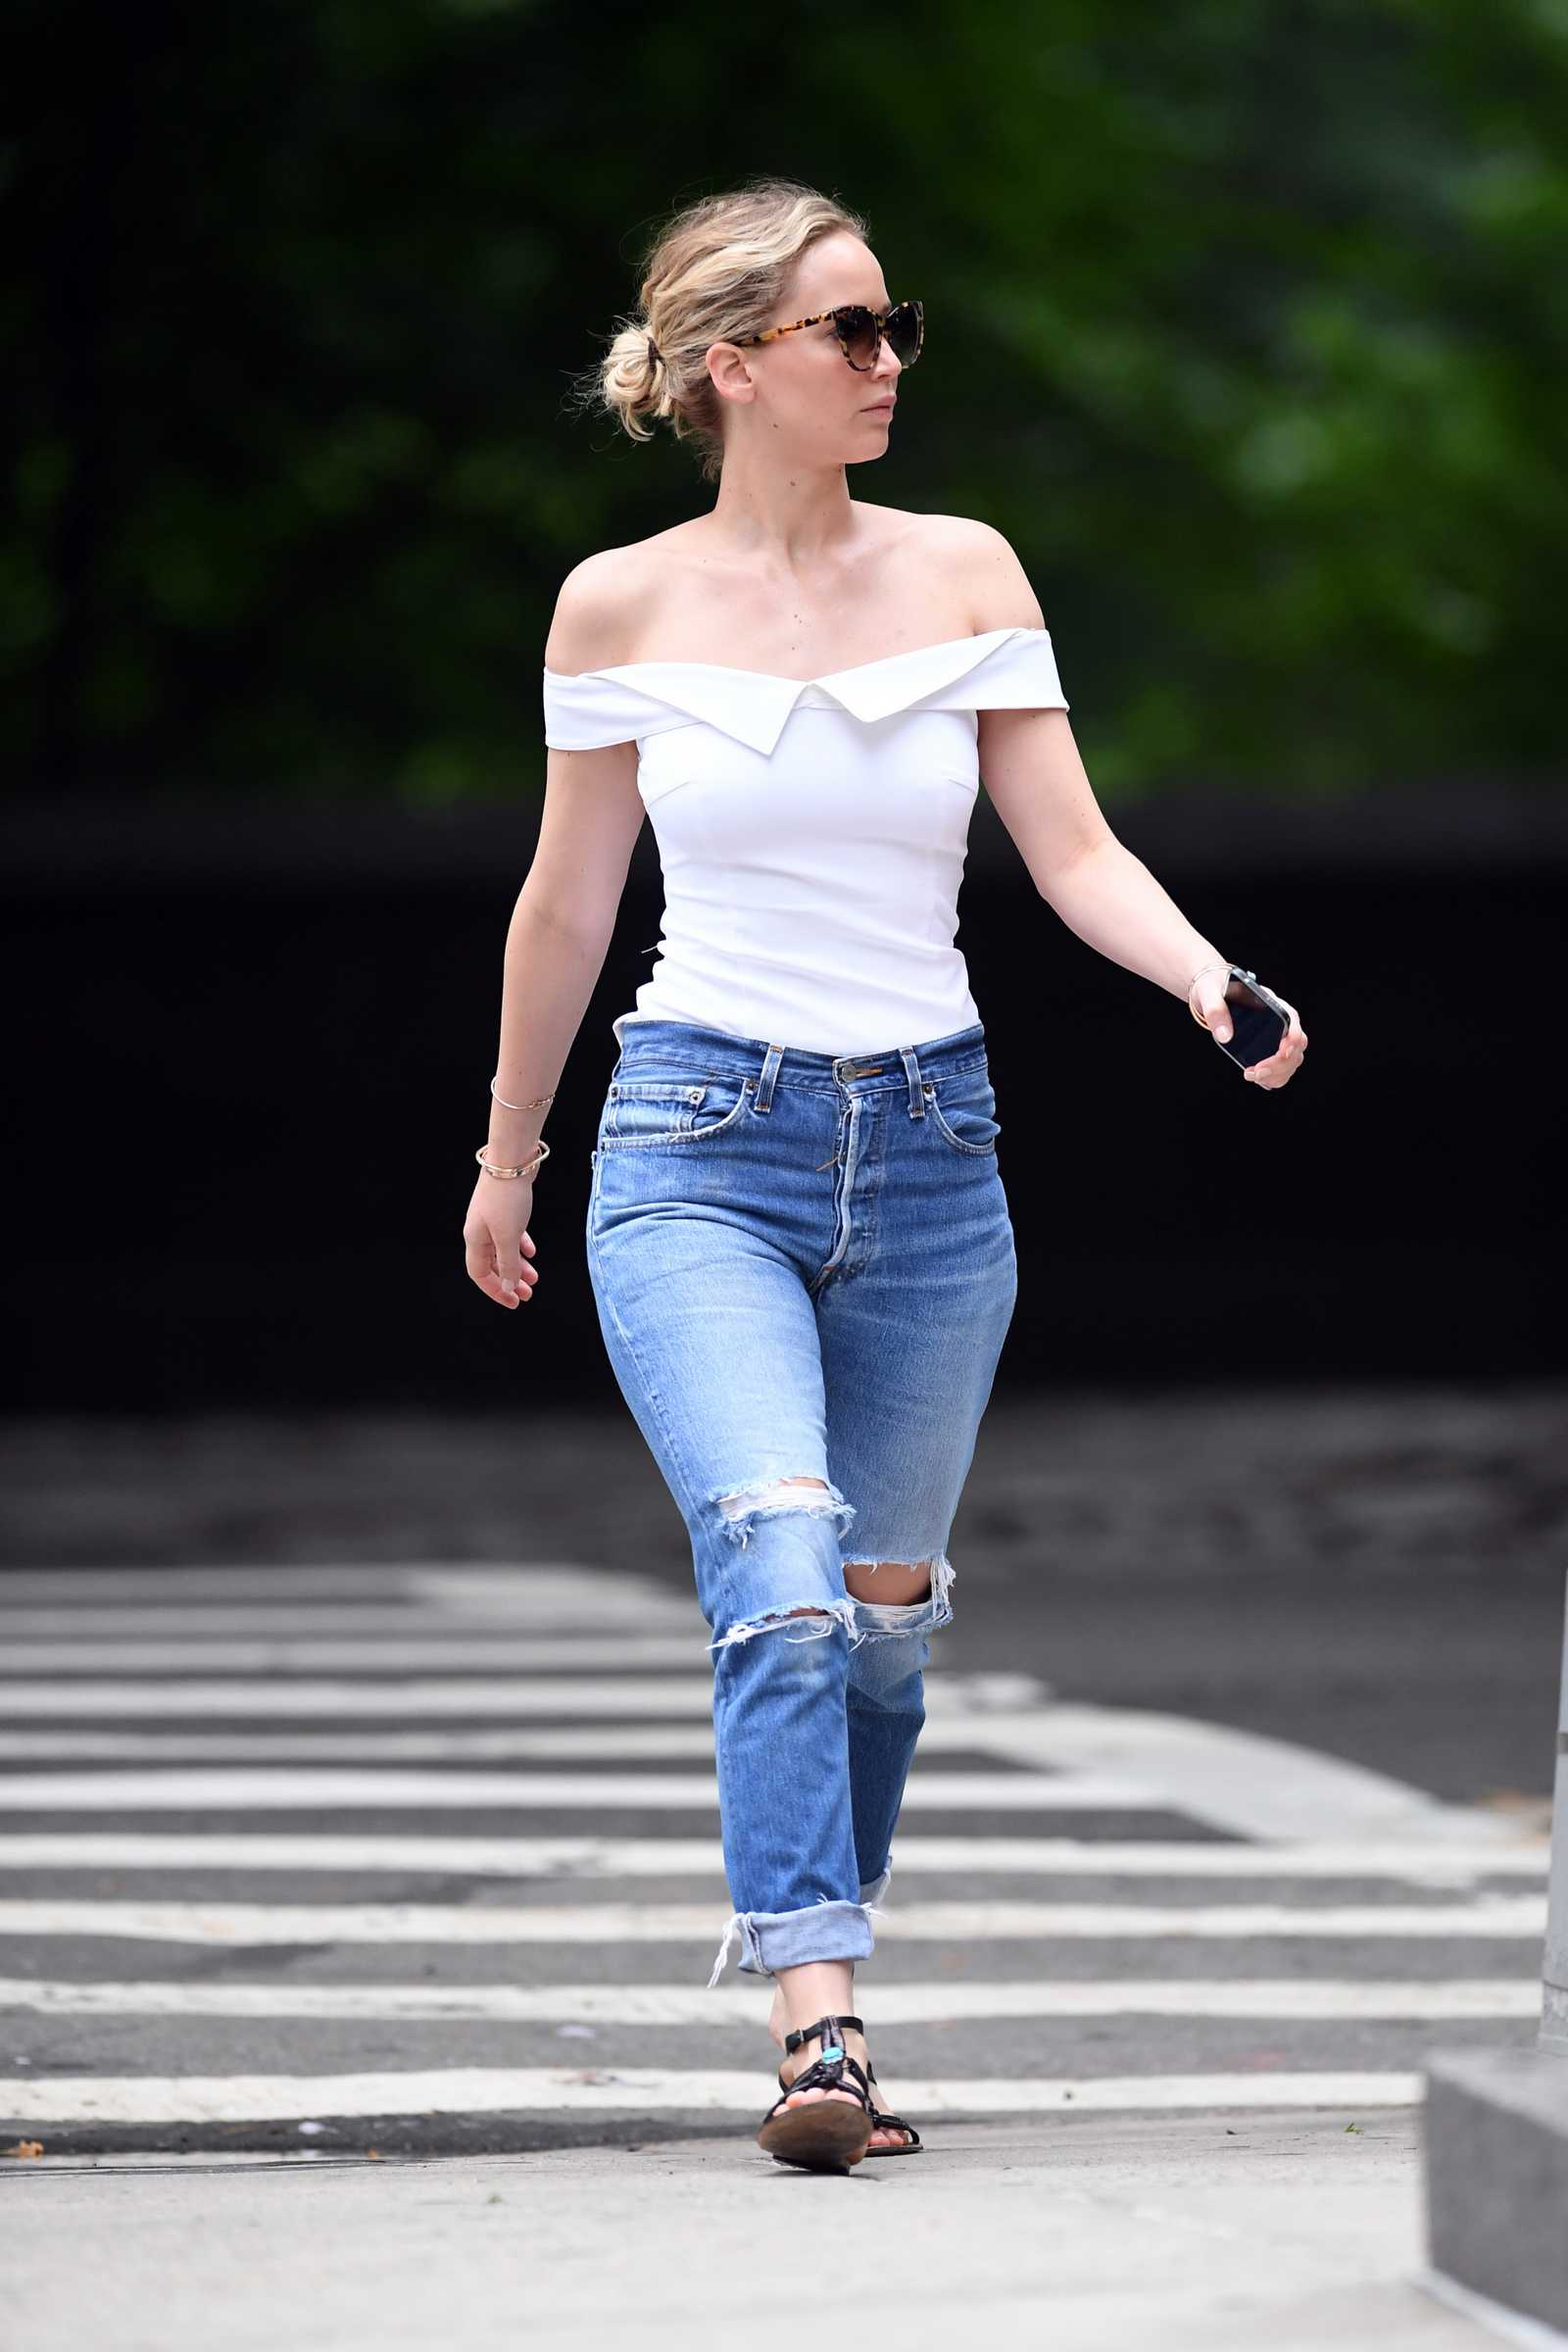 http://jenniferlawrencedaily.com/gallery/albums/userpics/10001/Jennifer_Lawrence_-_Going_for_a_walk_in_Central_Park_on_June_15-03.jpg